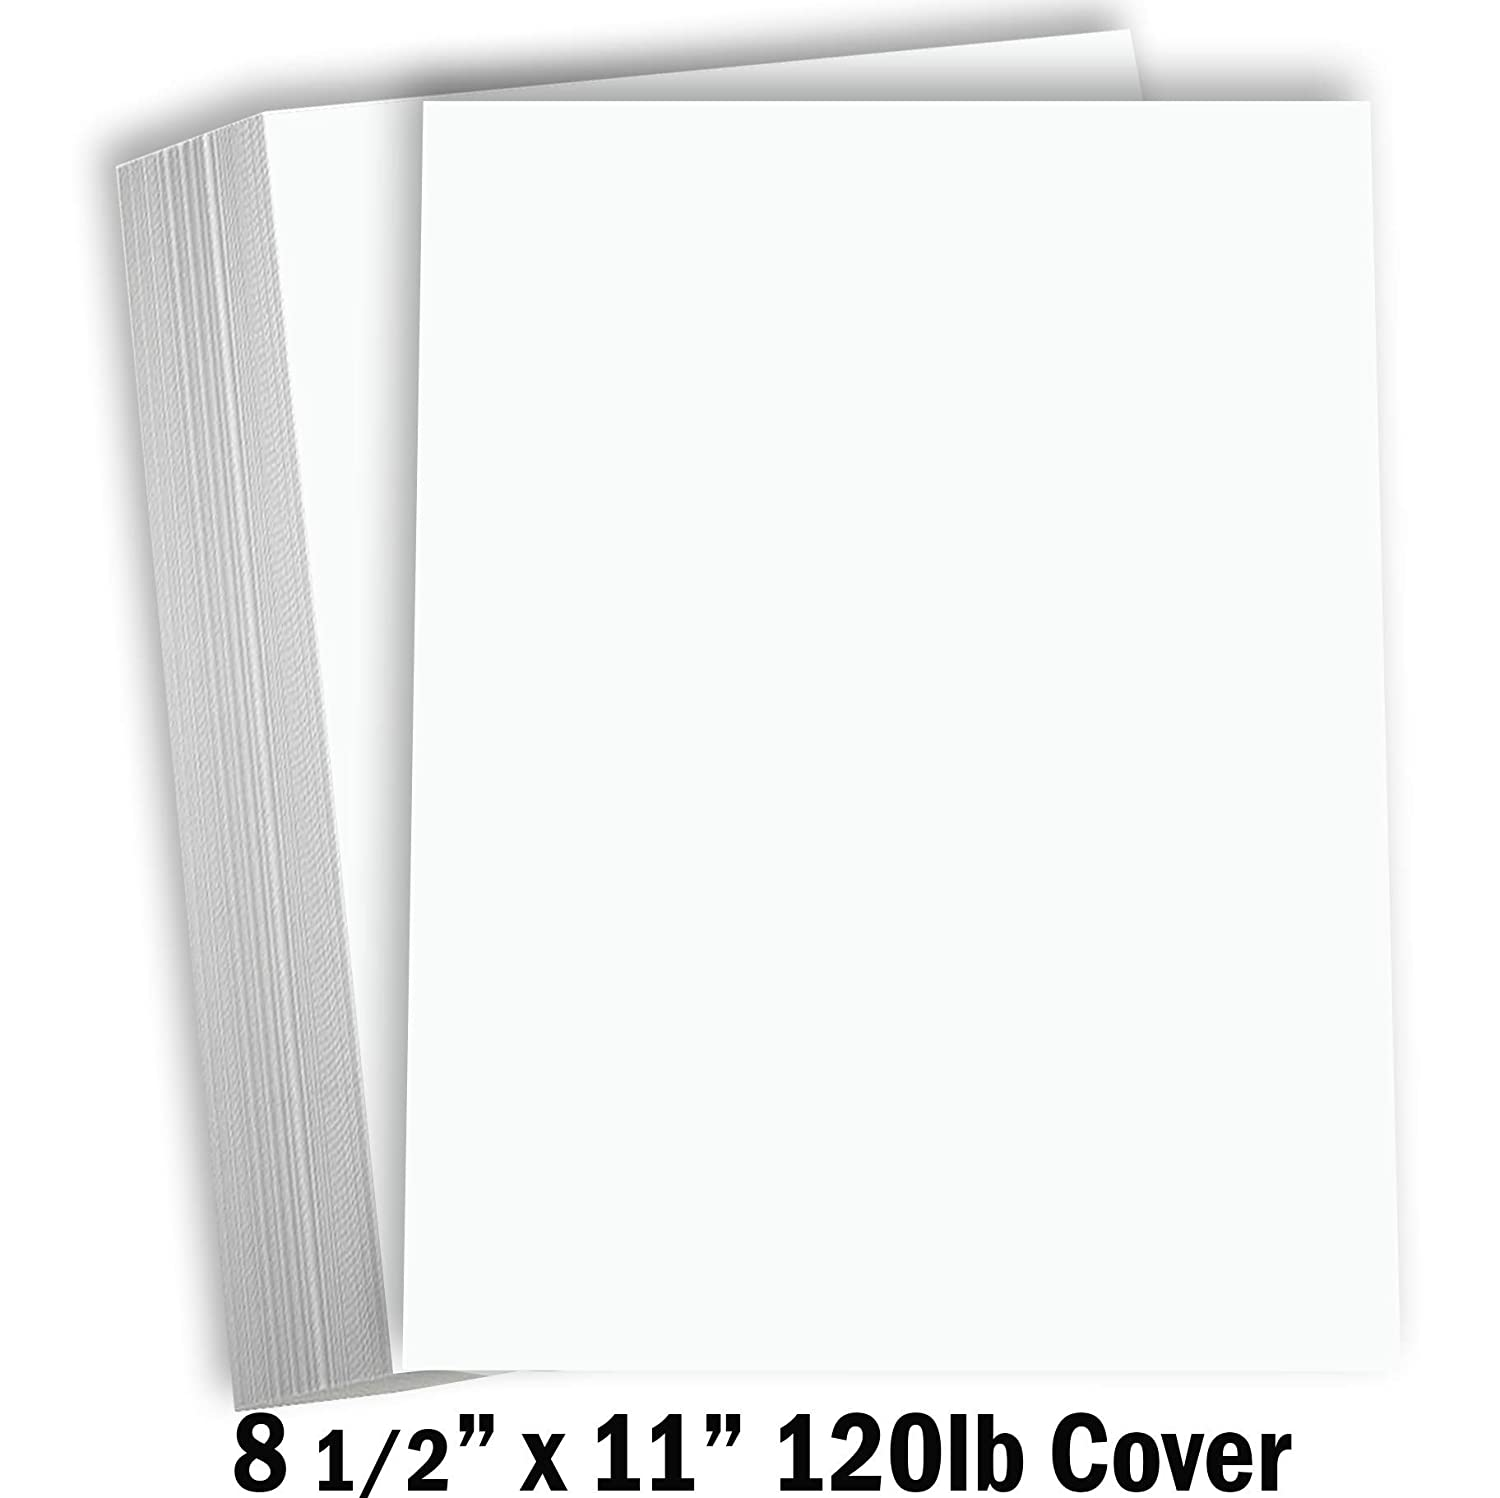 "Hamilco White Cardstock Thick Paper 8 1/2 x 11"" Heavy Weight 120 lb Cover Card Stock - 50 Pack"